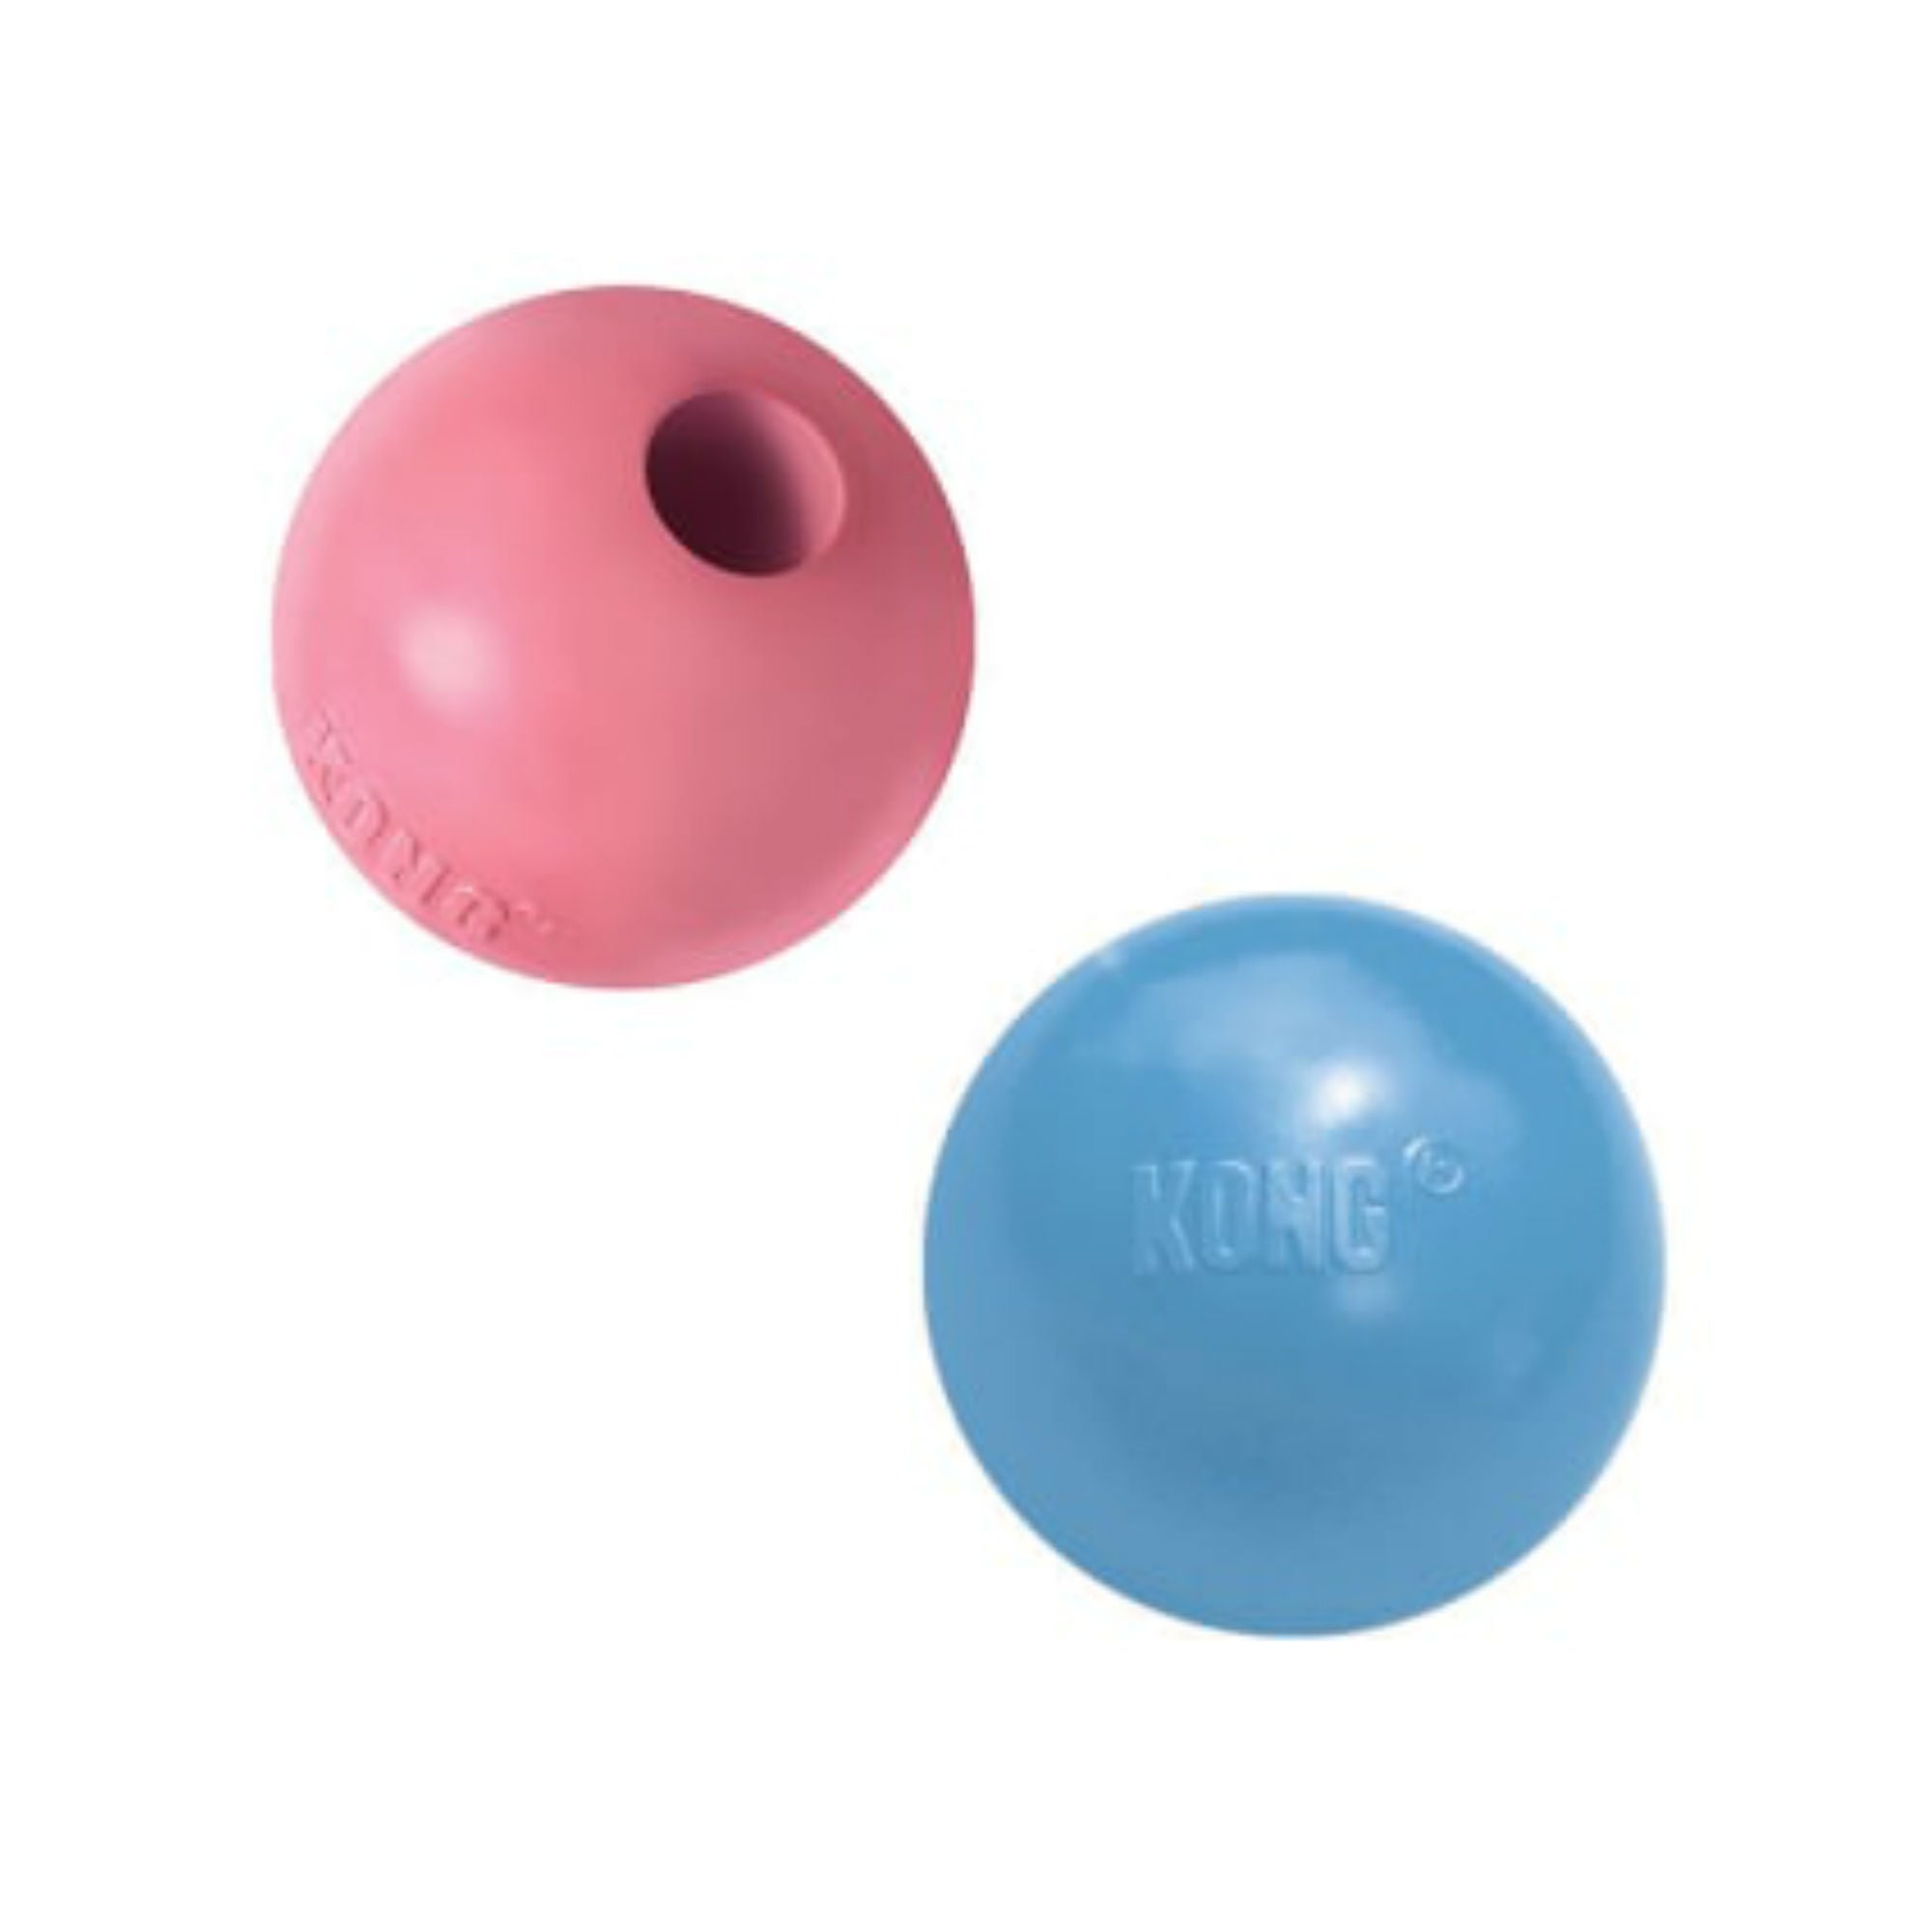 Kong Puppy Ball - Pink/Blue